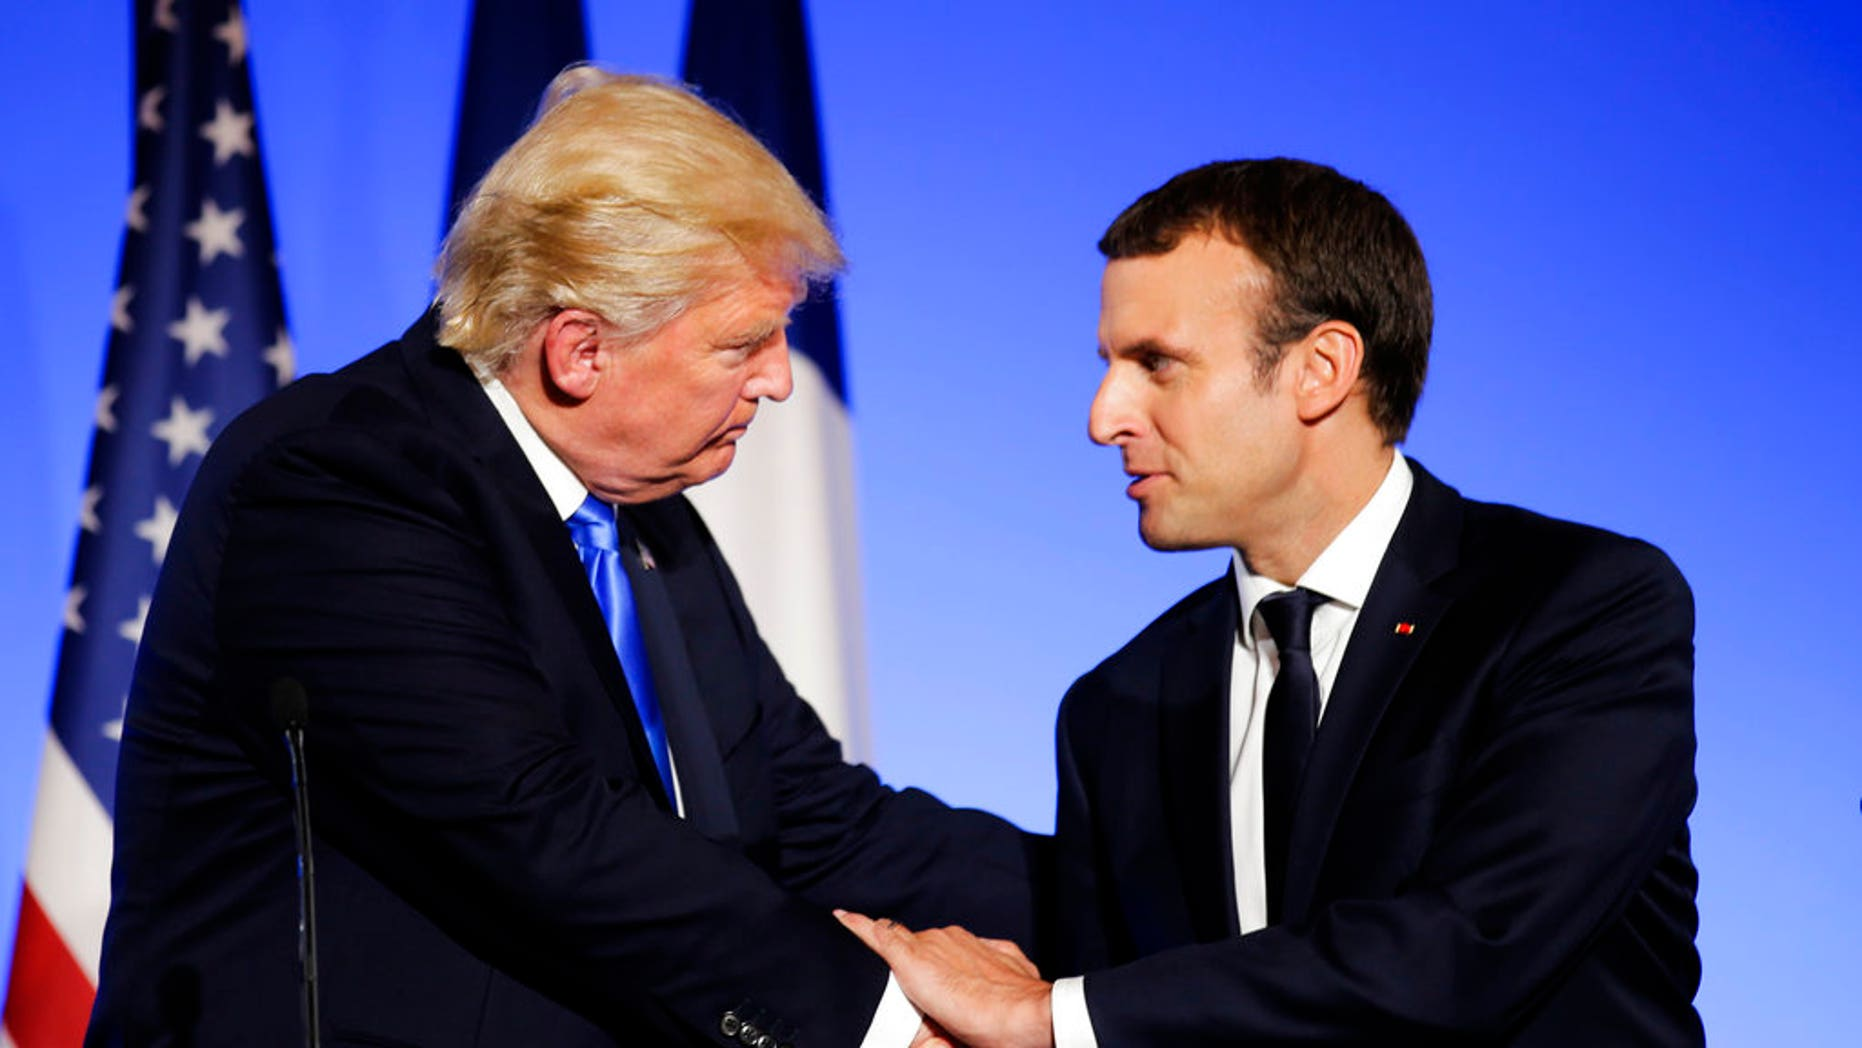 French President Macron says he may have changed President Trump's mind on the topic of climate change.